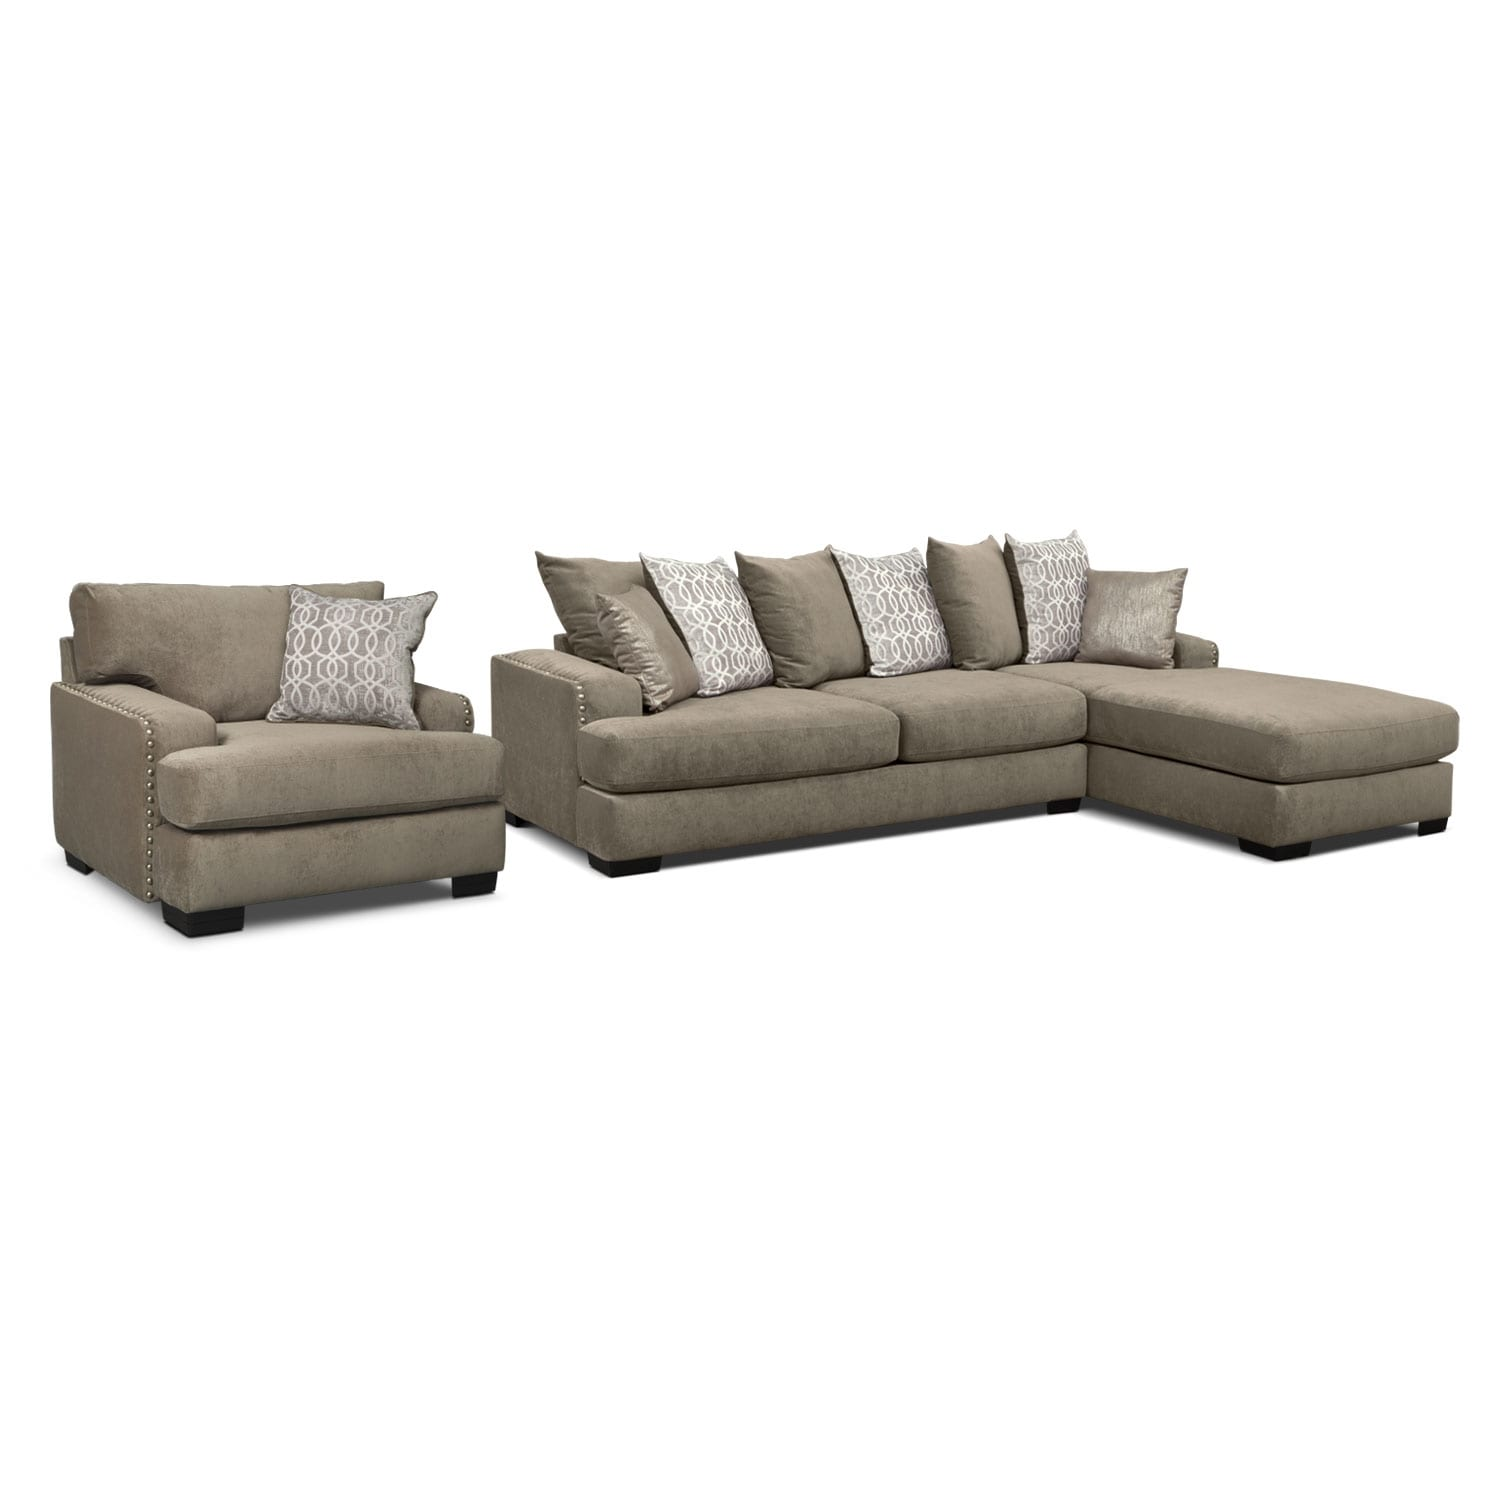 Living Room Furniture - Tempo 2-Piece Sectional with Right-Facing Chaise and Chair Set - Platinum